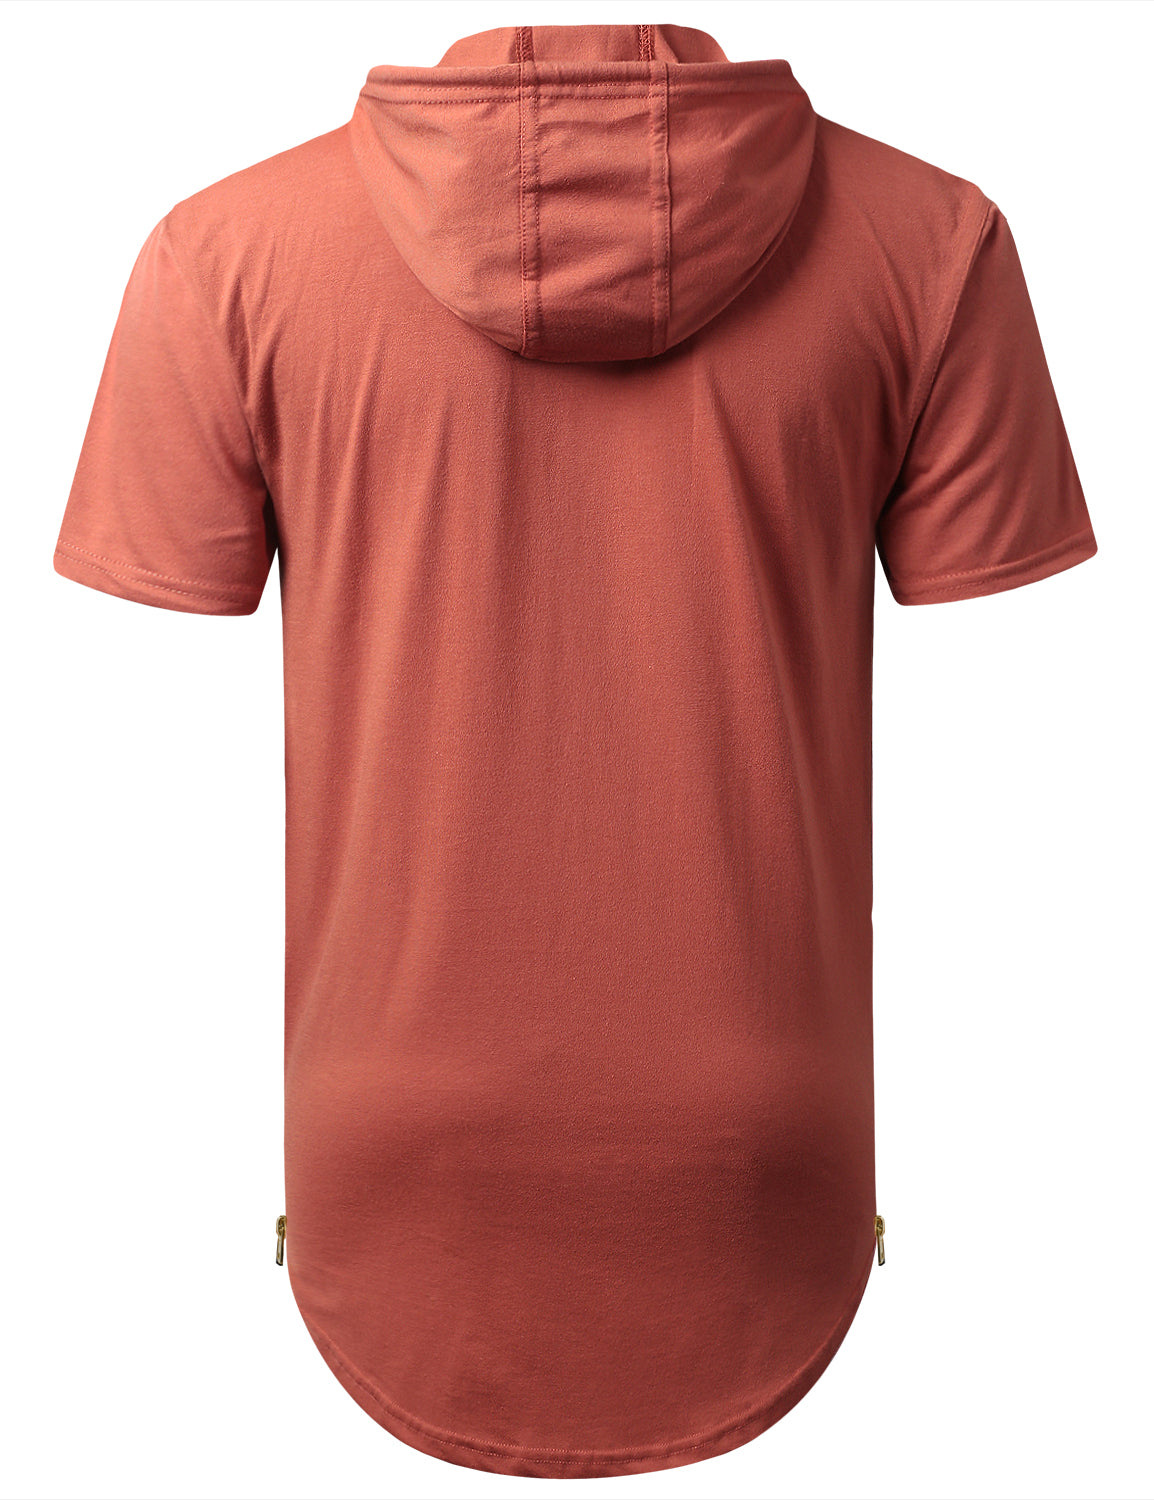 RUST Short Sleeve Hoodie w/ Zippers - URBANCREWS